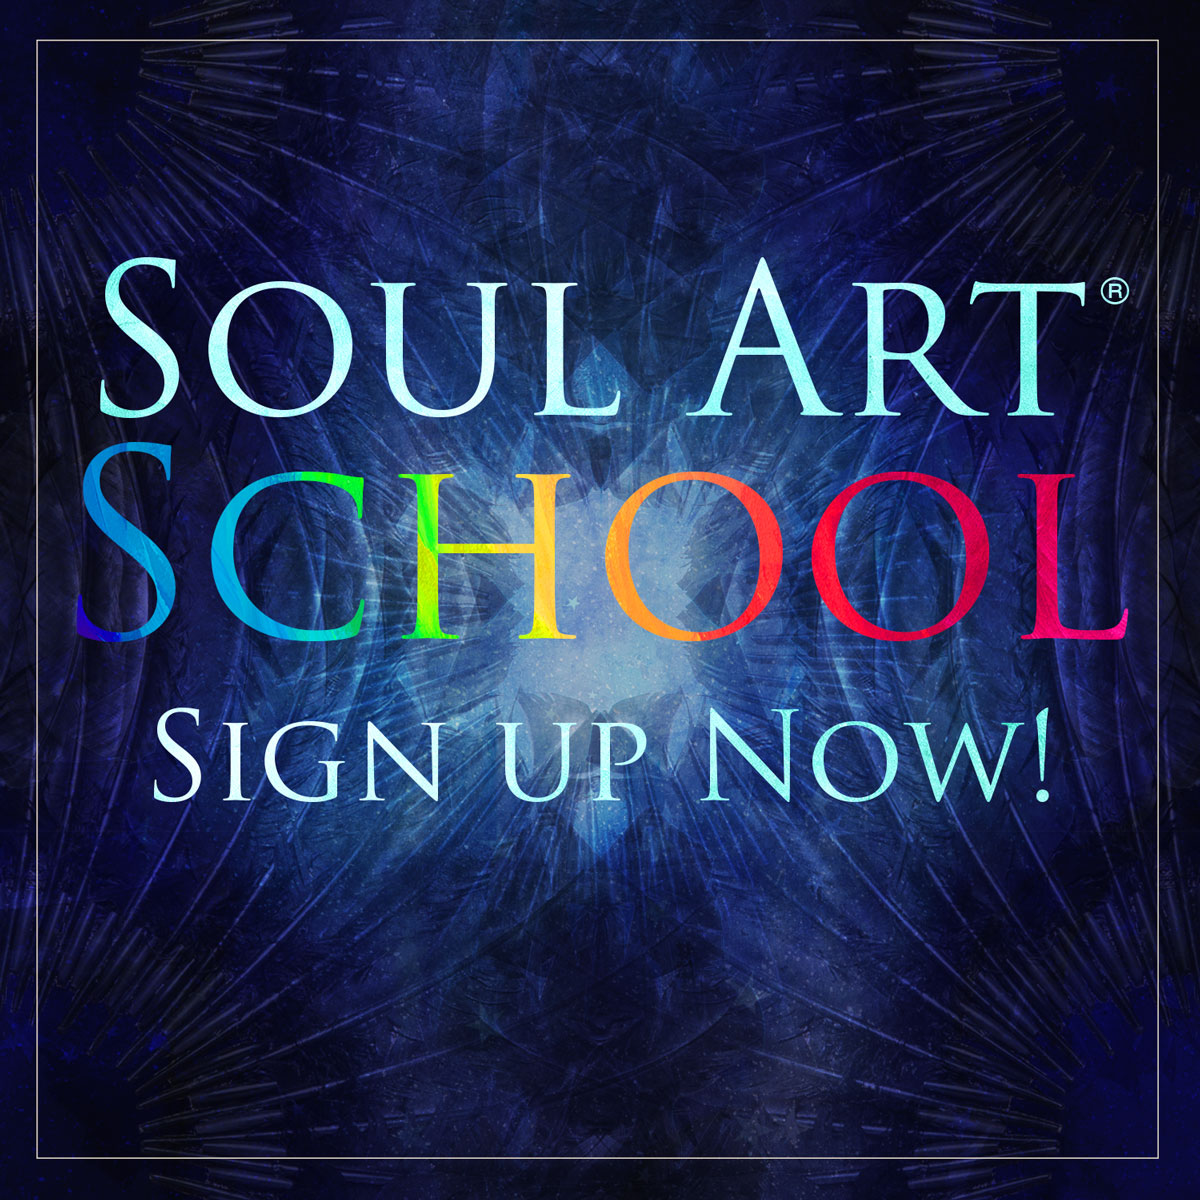 Soul Art School Sign Up Now!